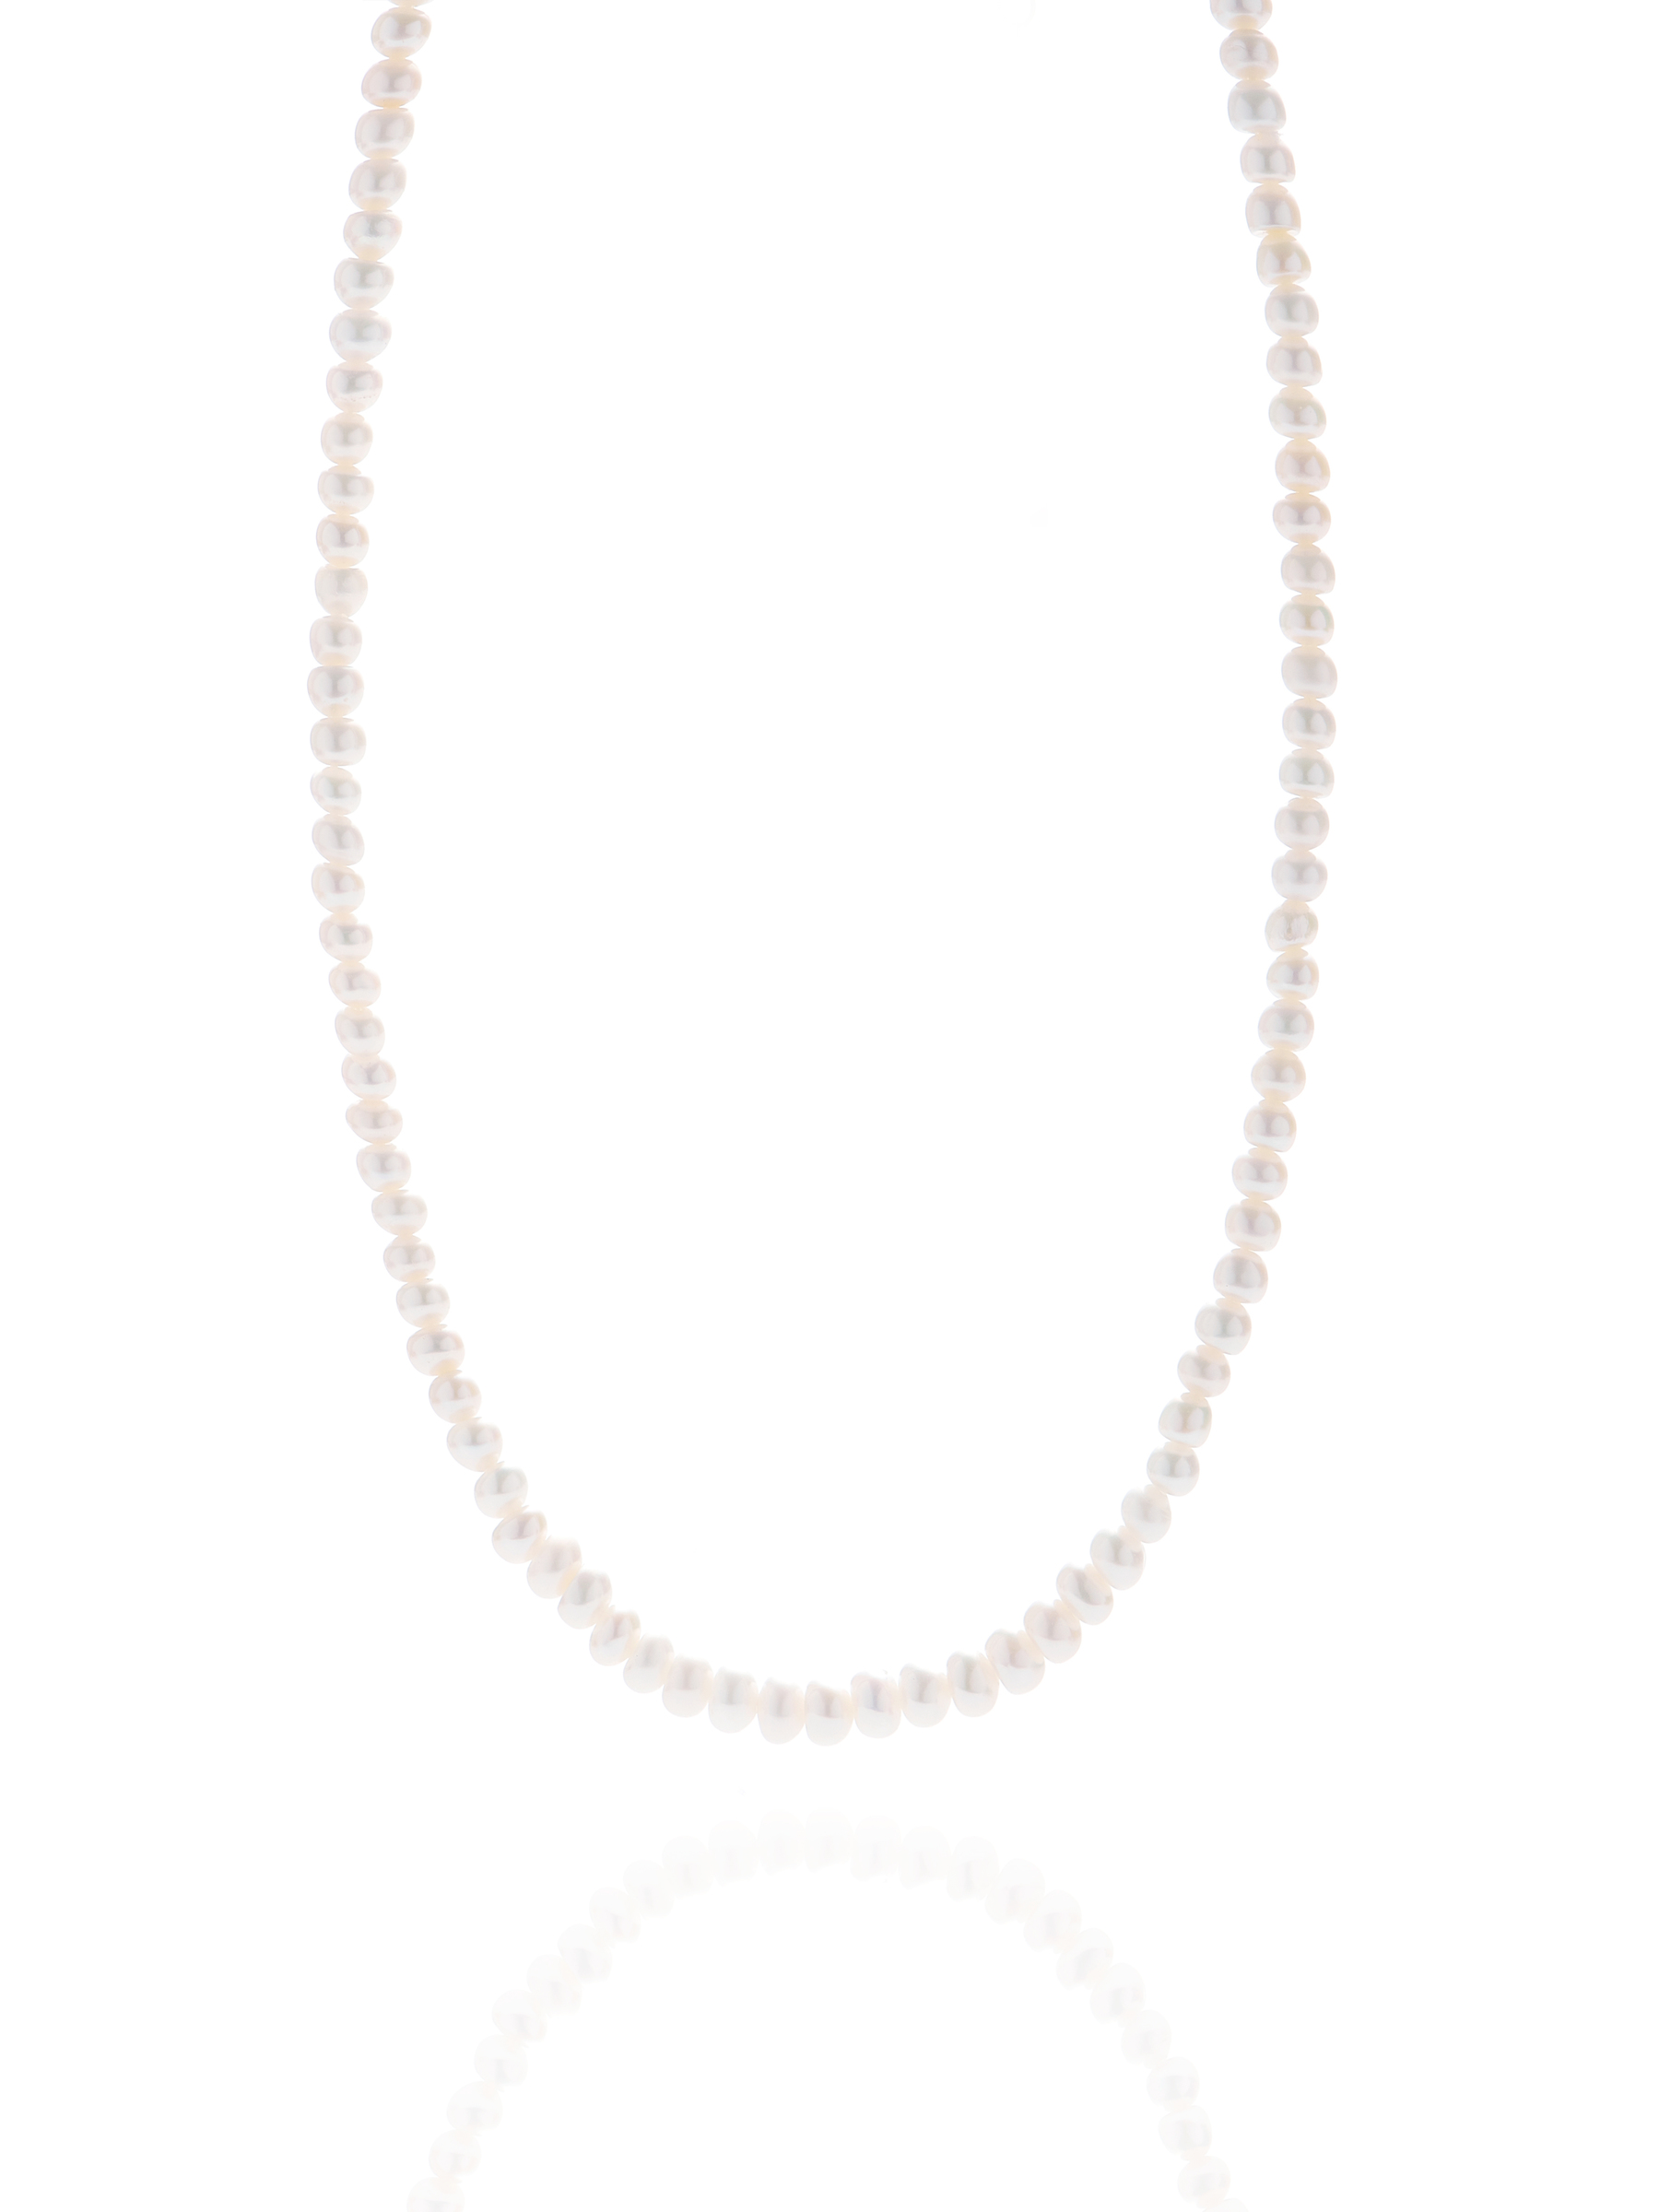 Classic Pearl Necklace.jpg